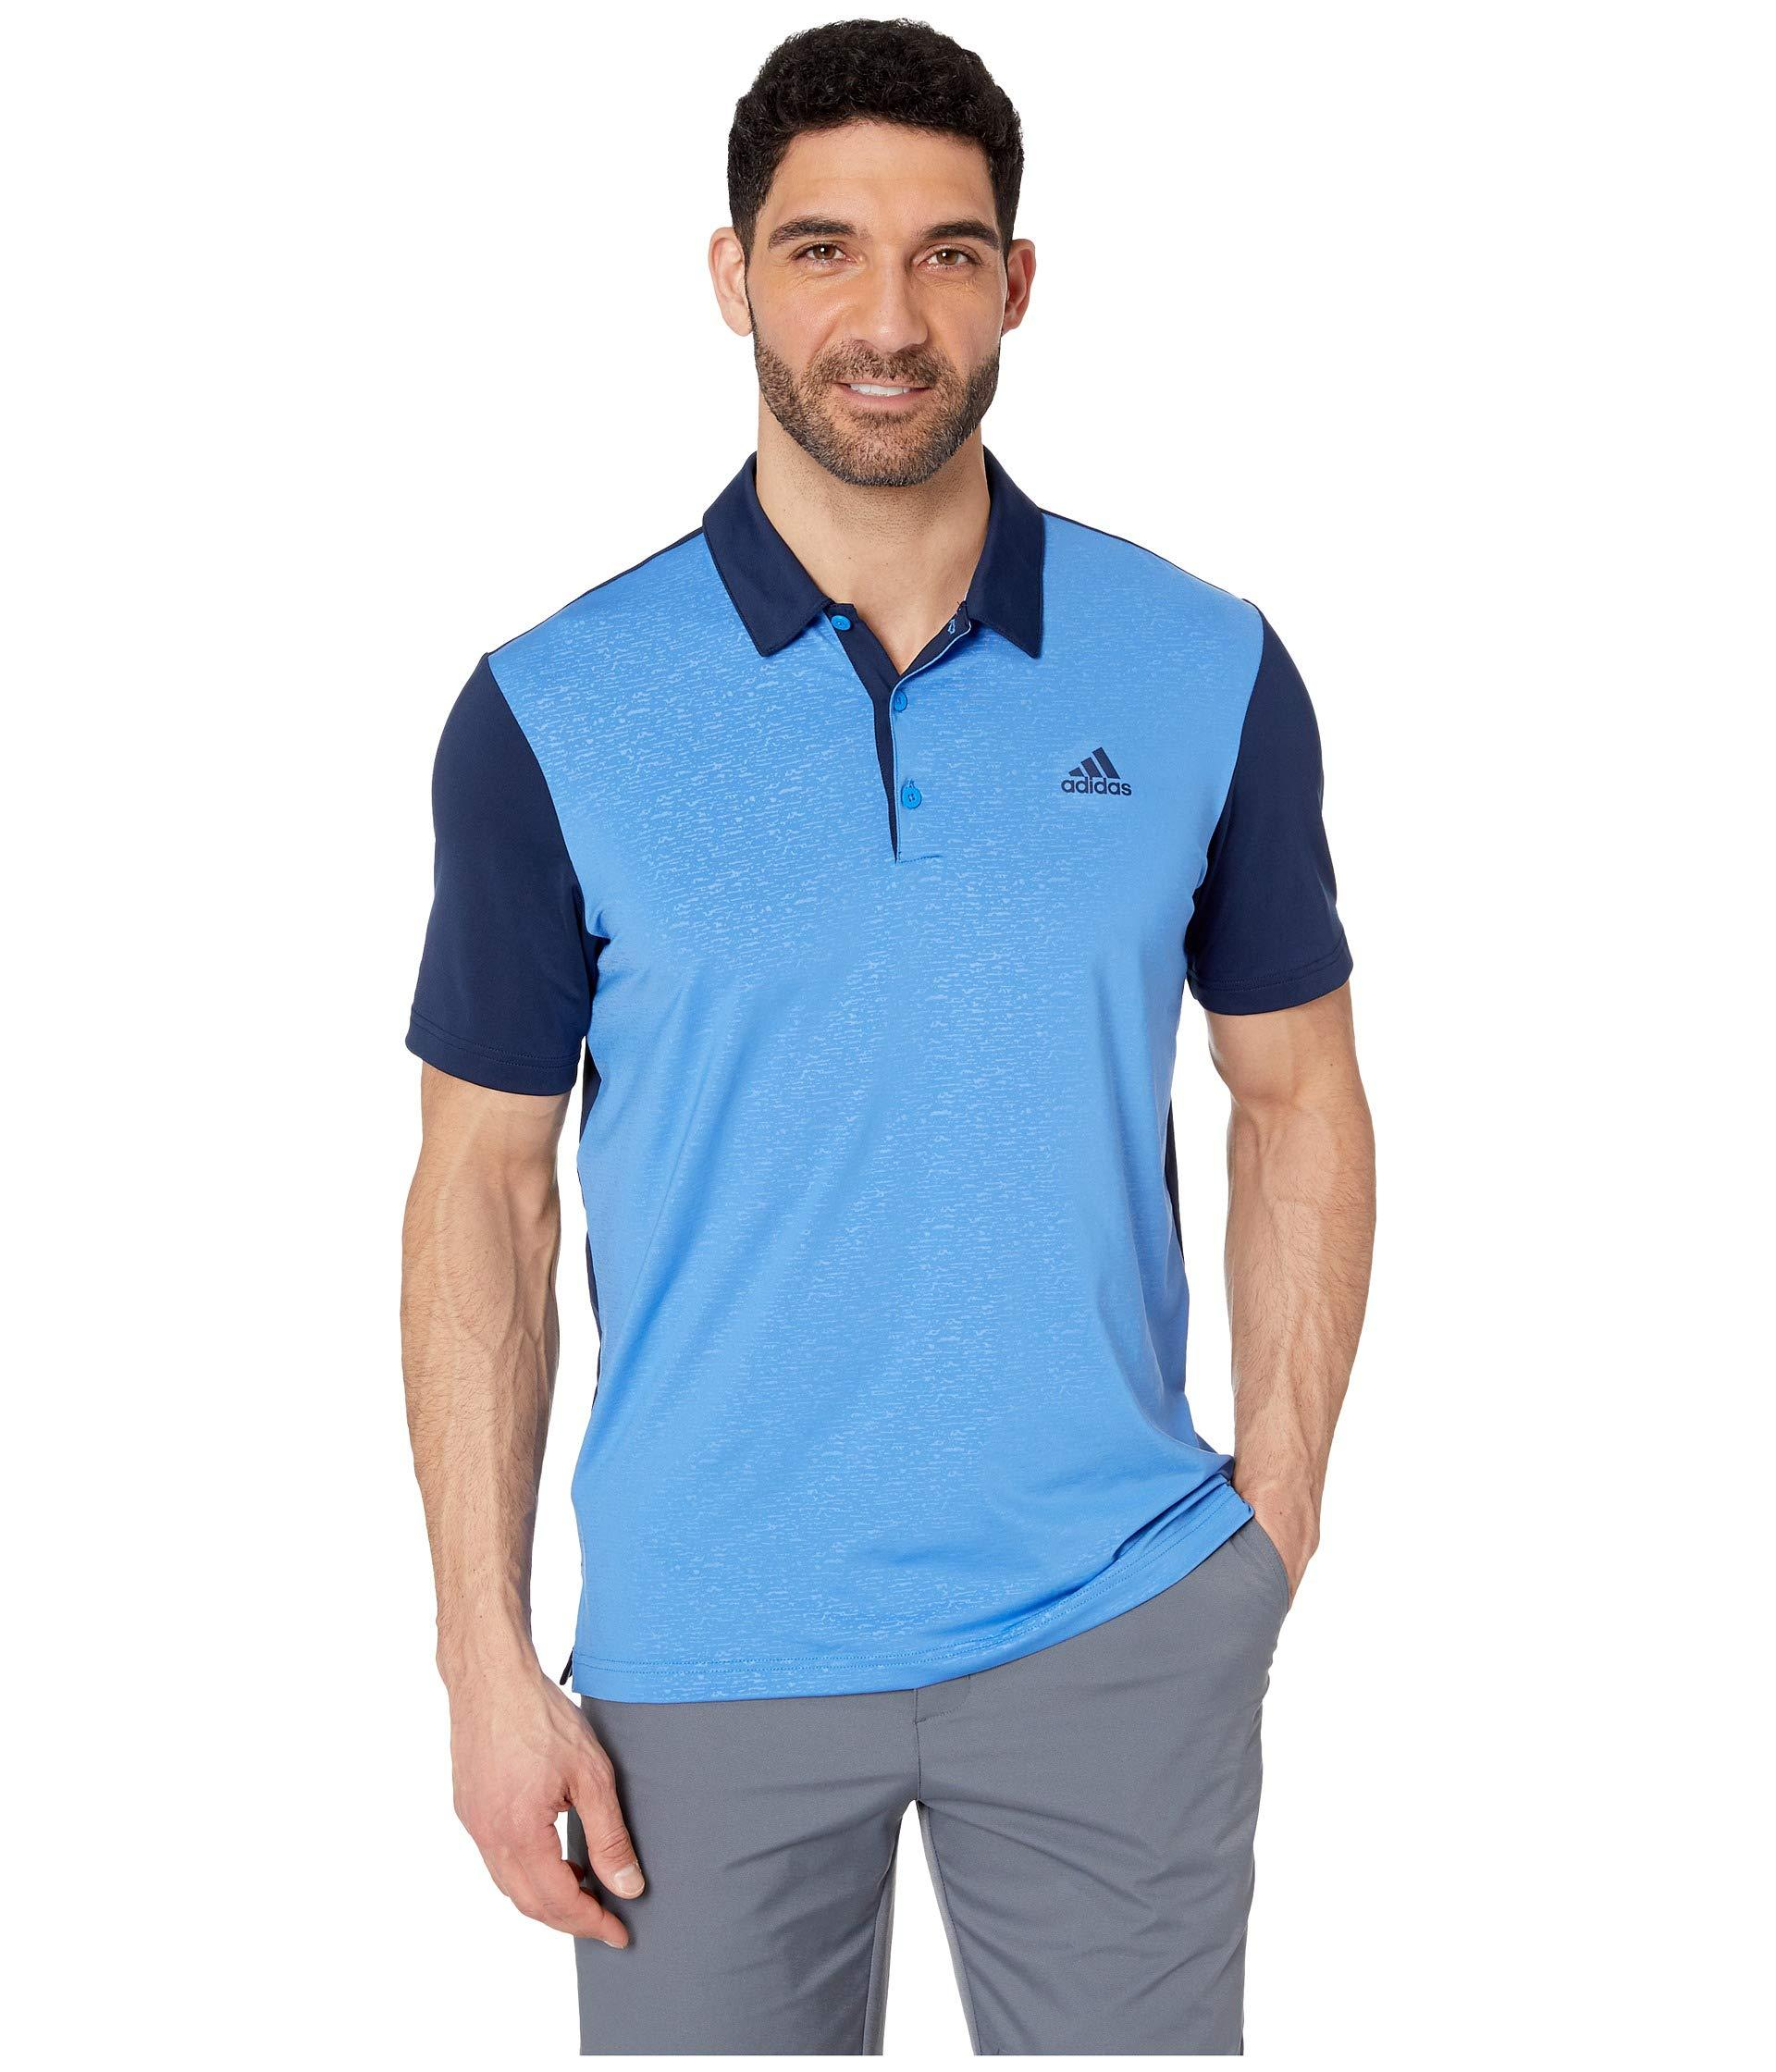 f422e84330ae4 Lyst - adidas Originals Ultimate Climacool(r) Solid Polo (shock Red ...